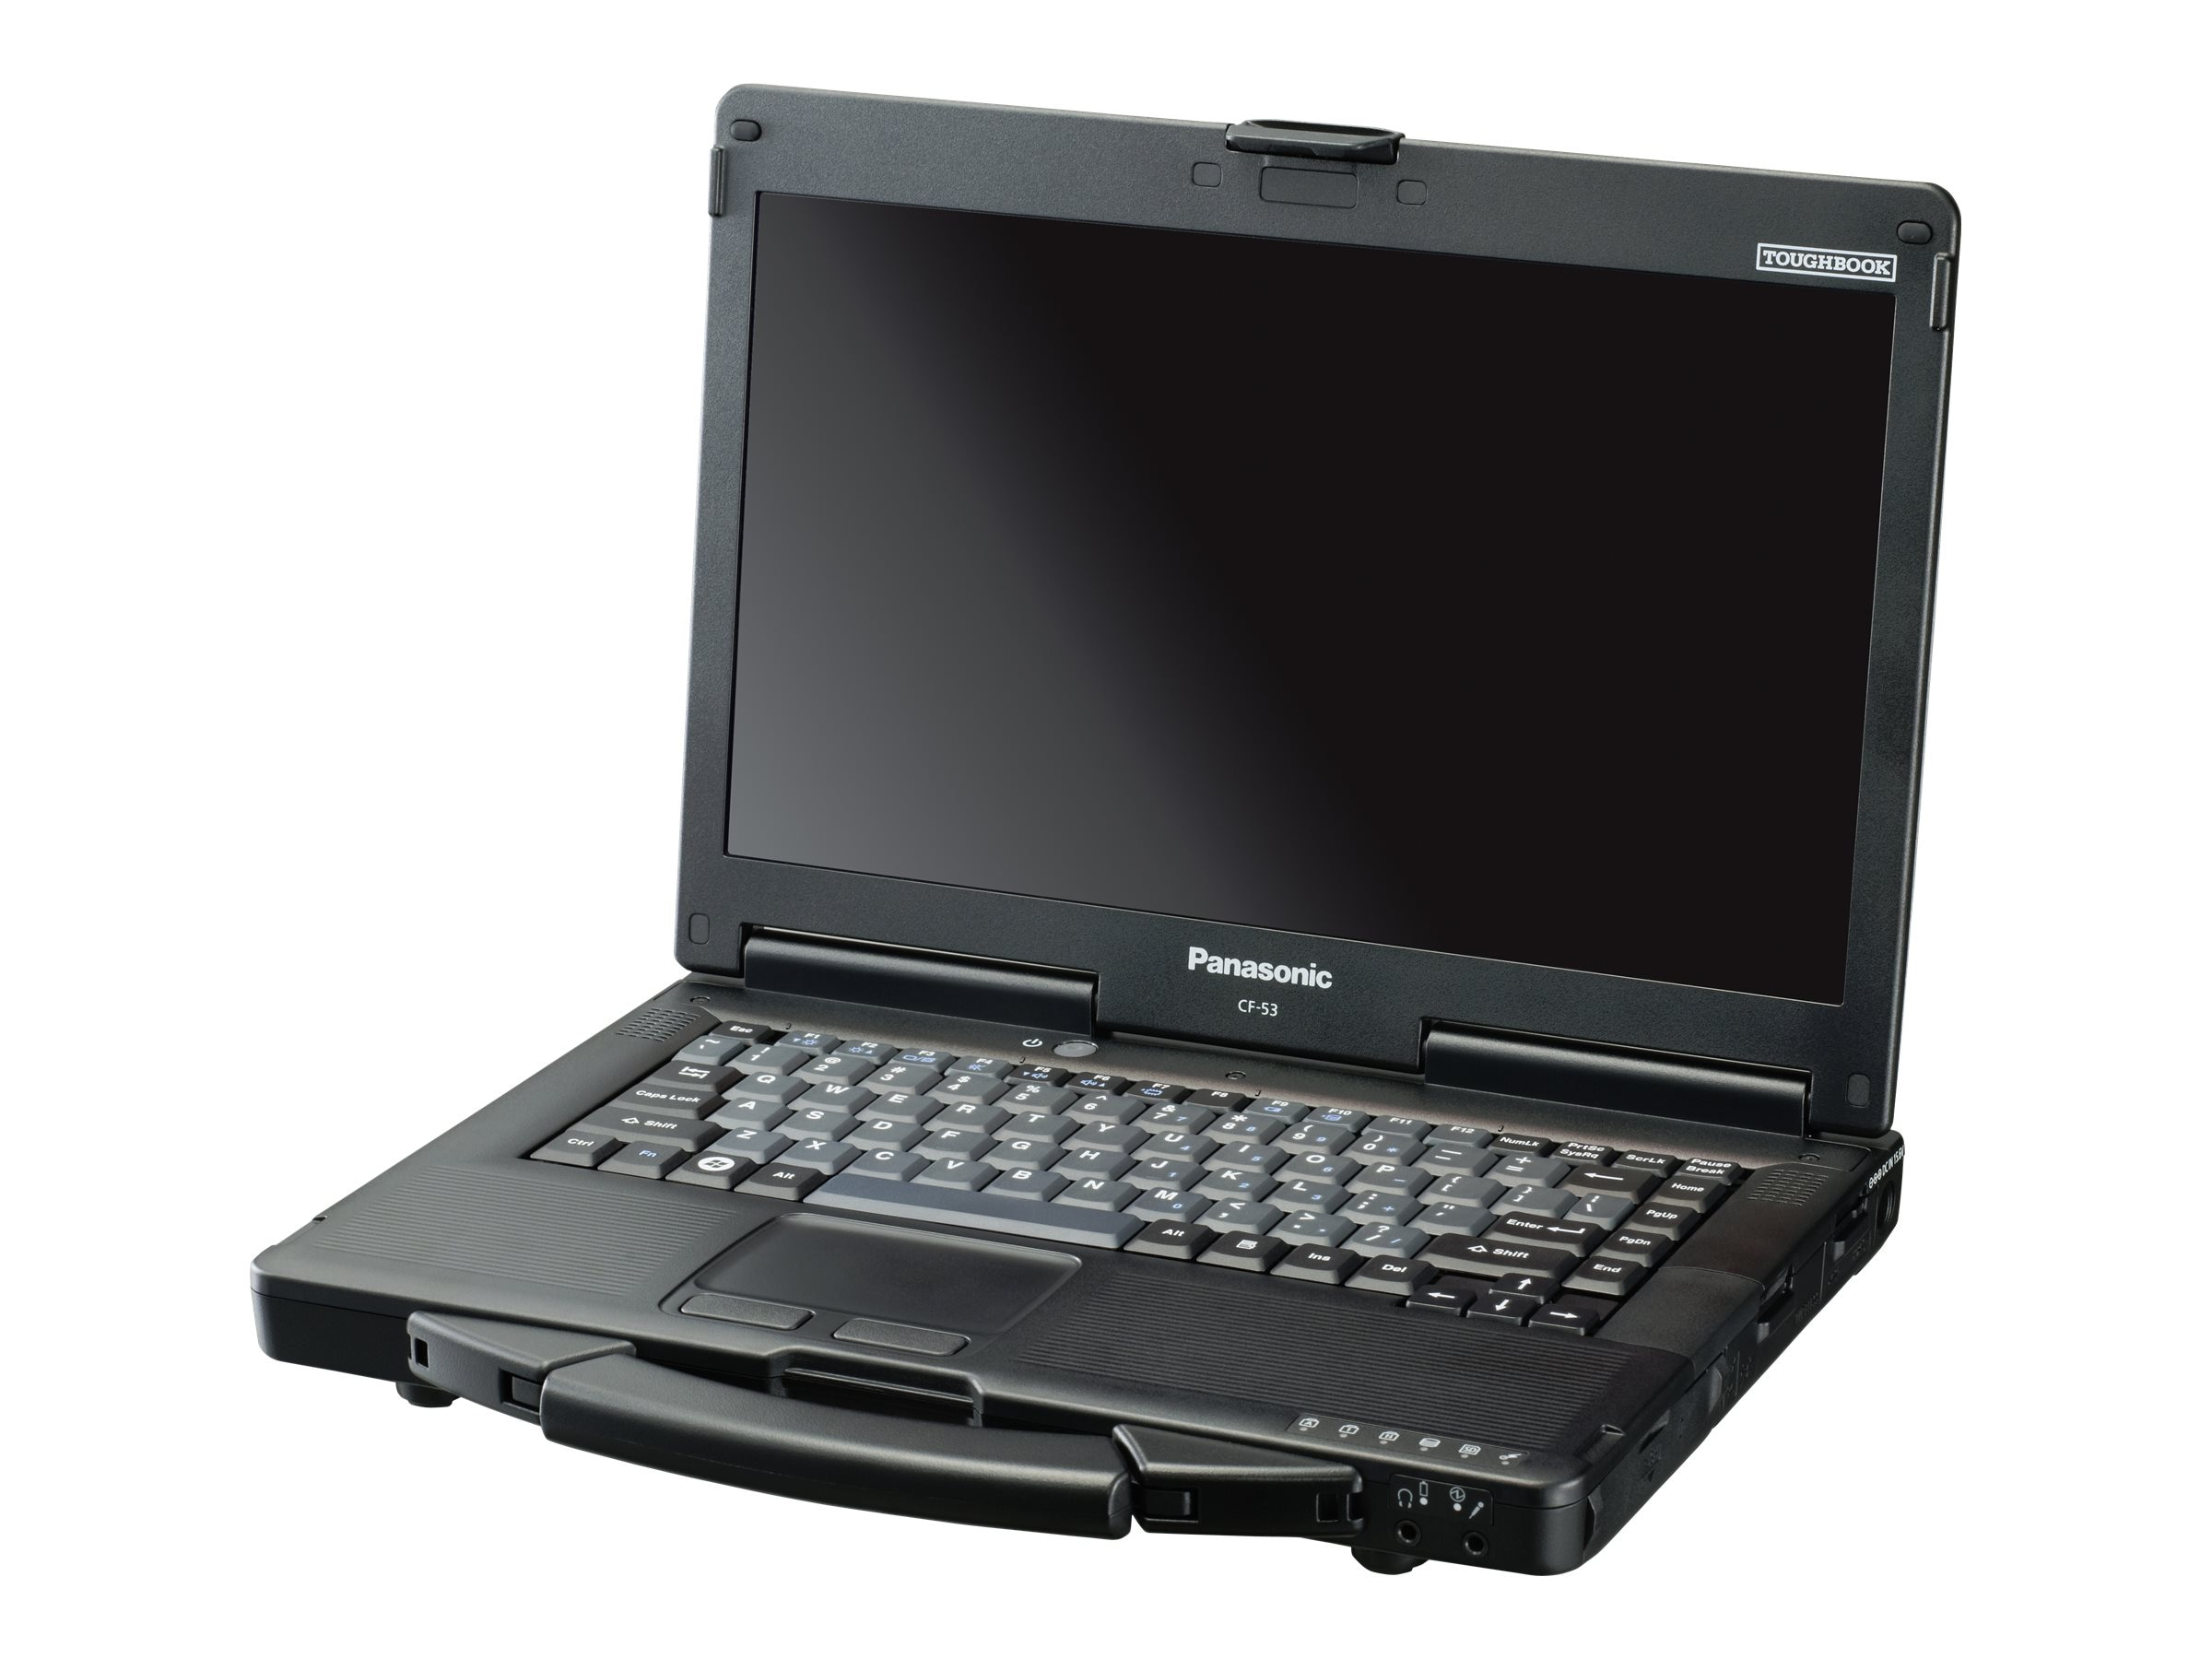 Panasonic Toughbook 53 Core i7-4600U 2.1GHz 14